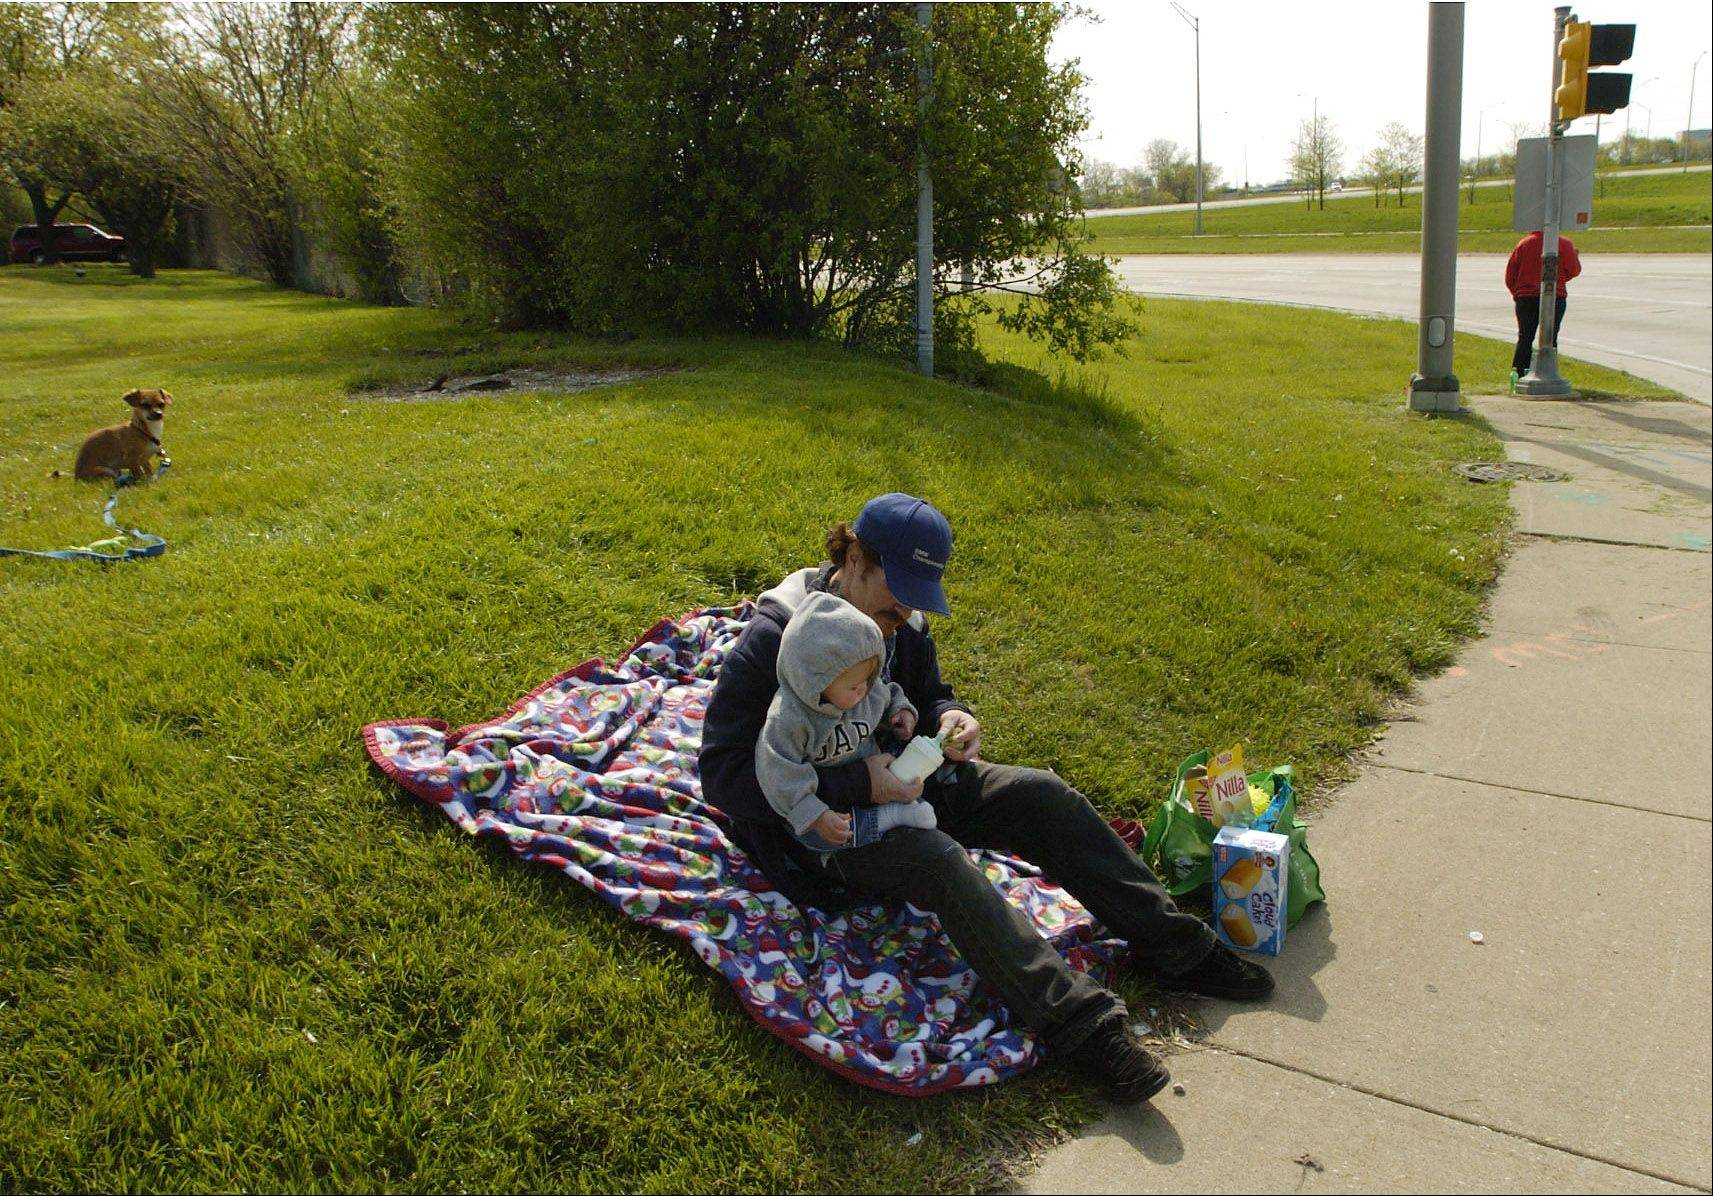 Joey Giancaspro, along with his wife, April, 1-year-old son, Gavin, and pet dog, Chivo, have been squatting on a parkway off the westbound exit ramp of the Jane Addams Tollway and Arlington Heights Road for the past few days to ask for donations.